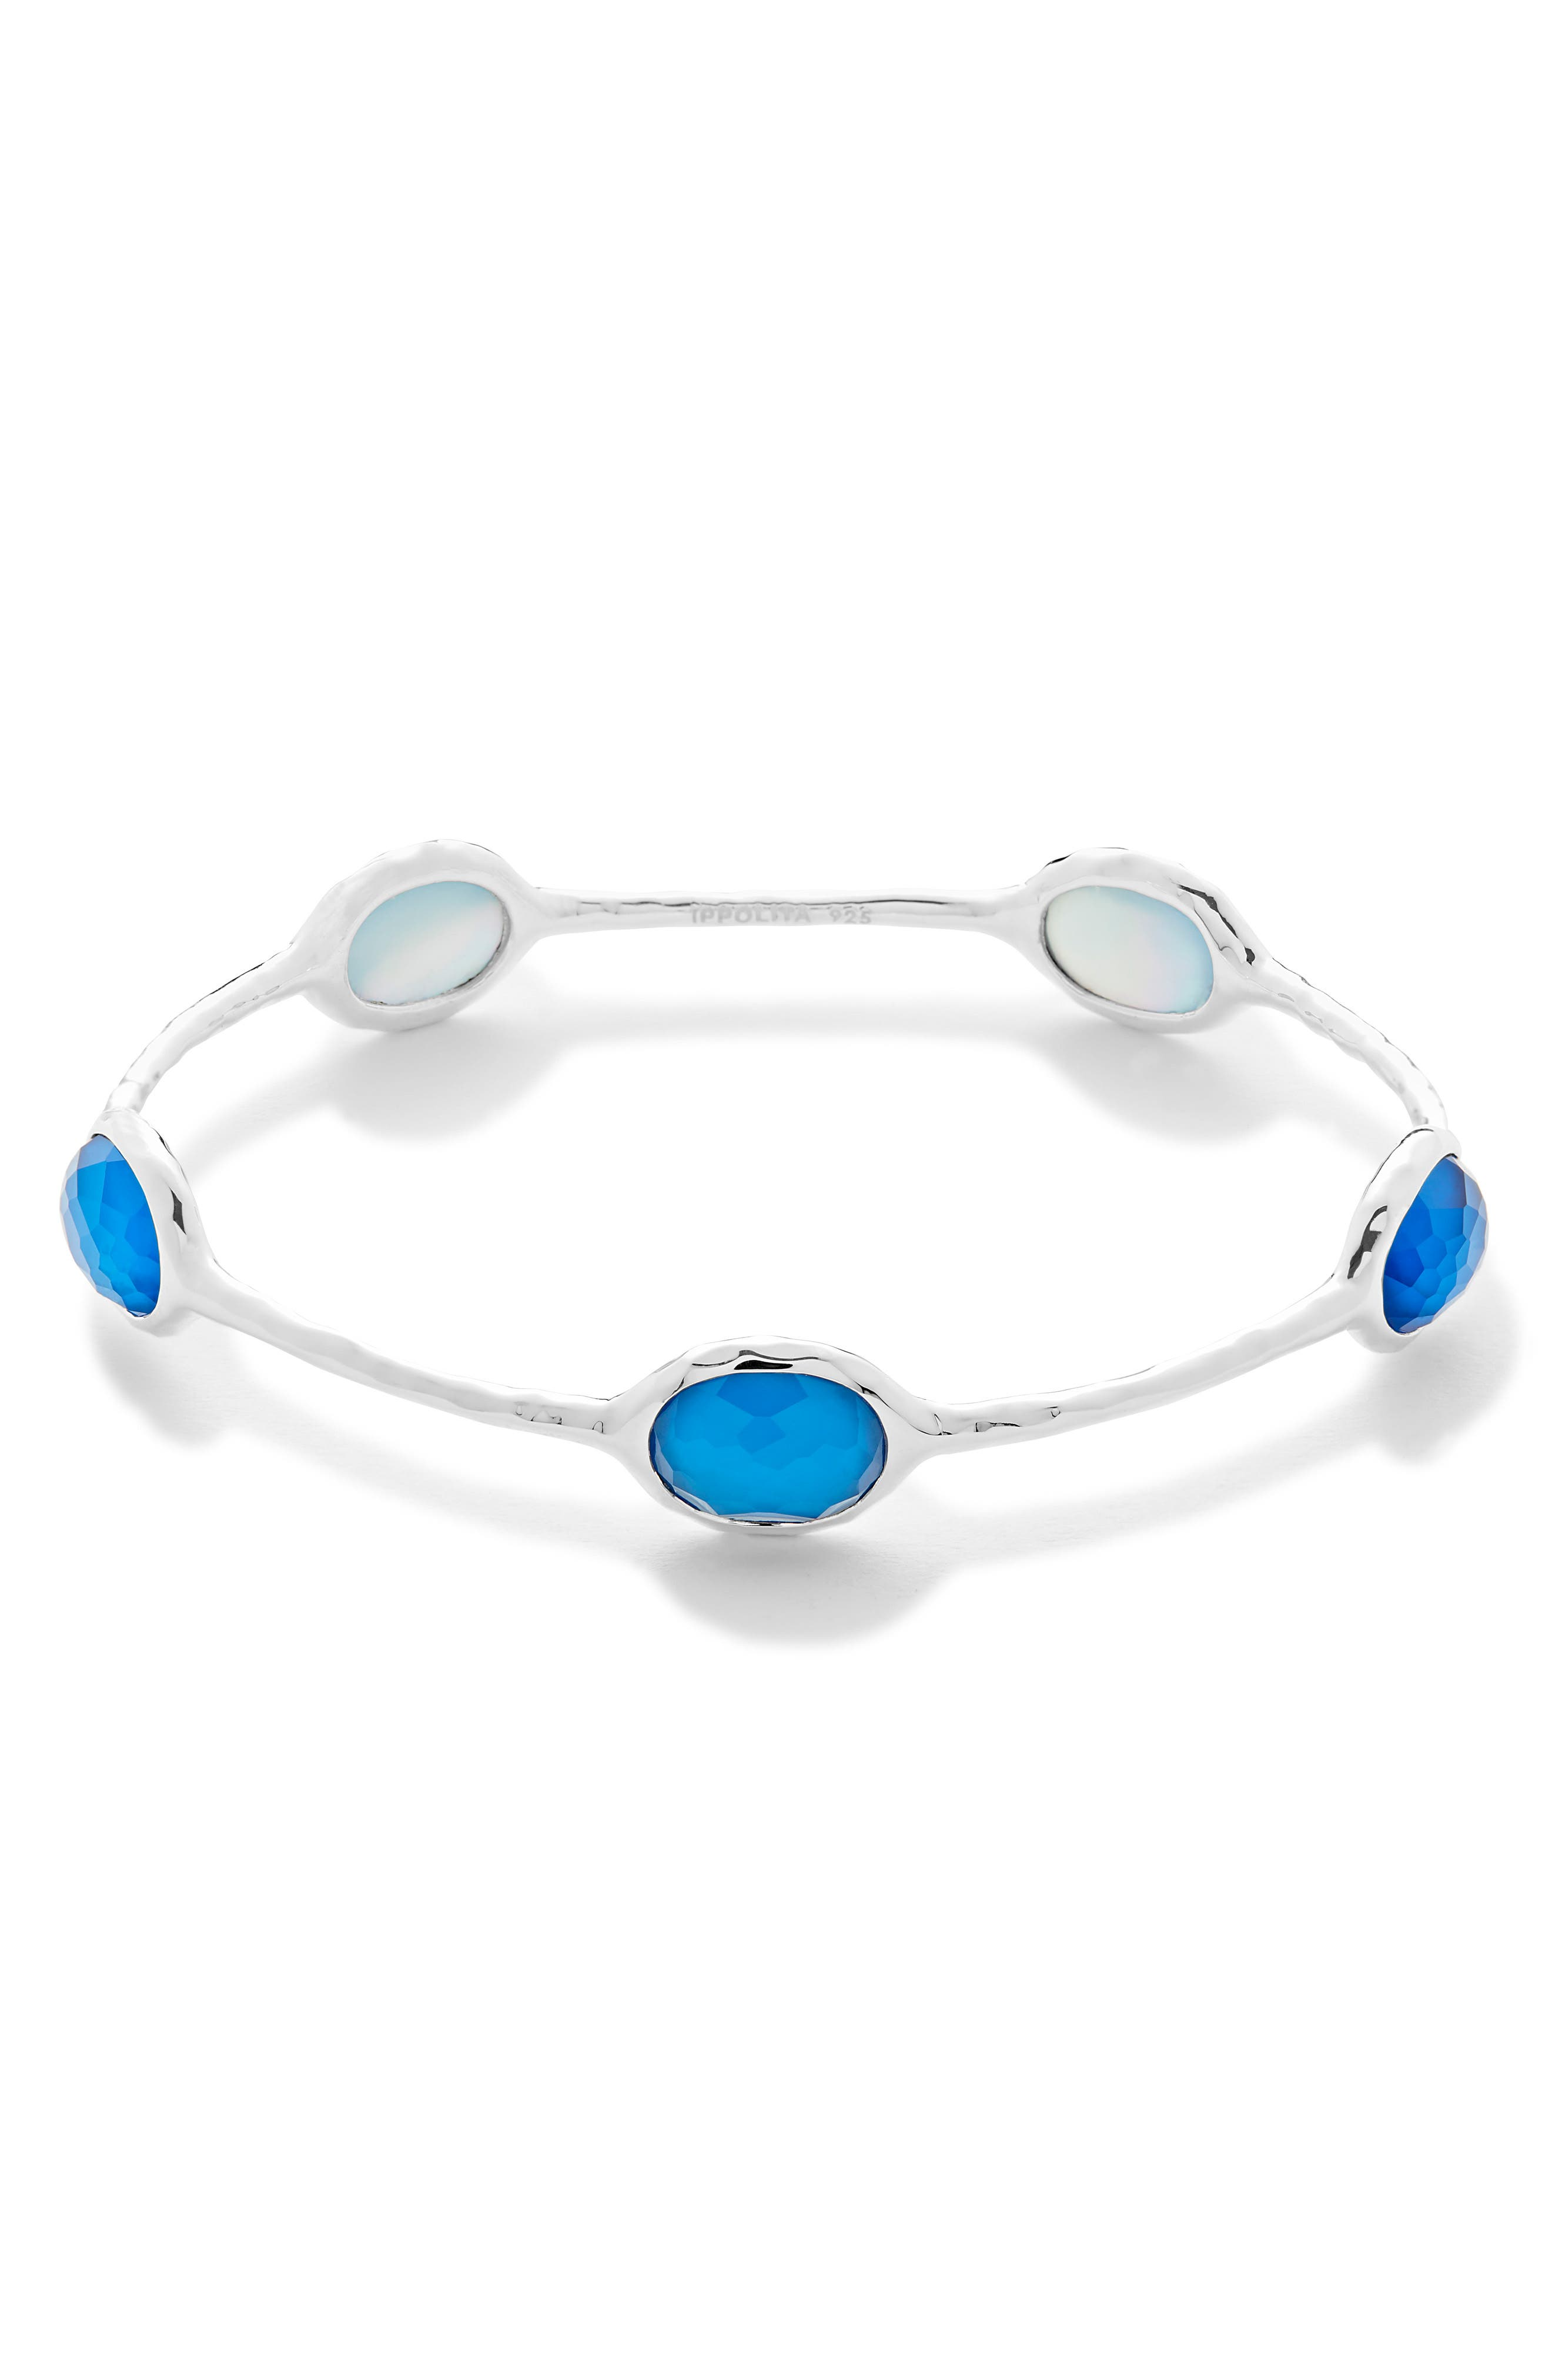 Main Image - Ippolita 'Wonderland' 5-Station Bangle